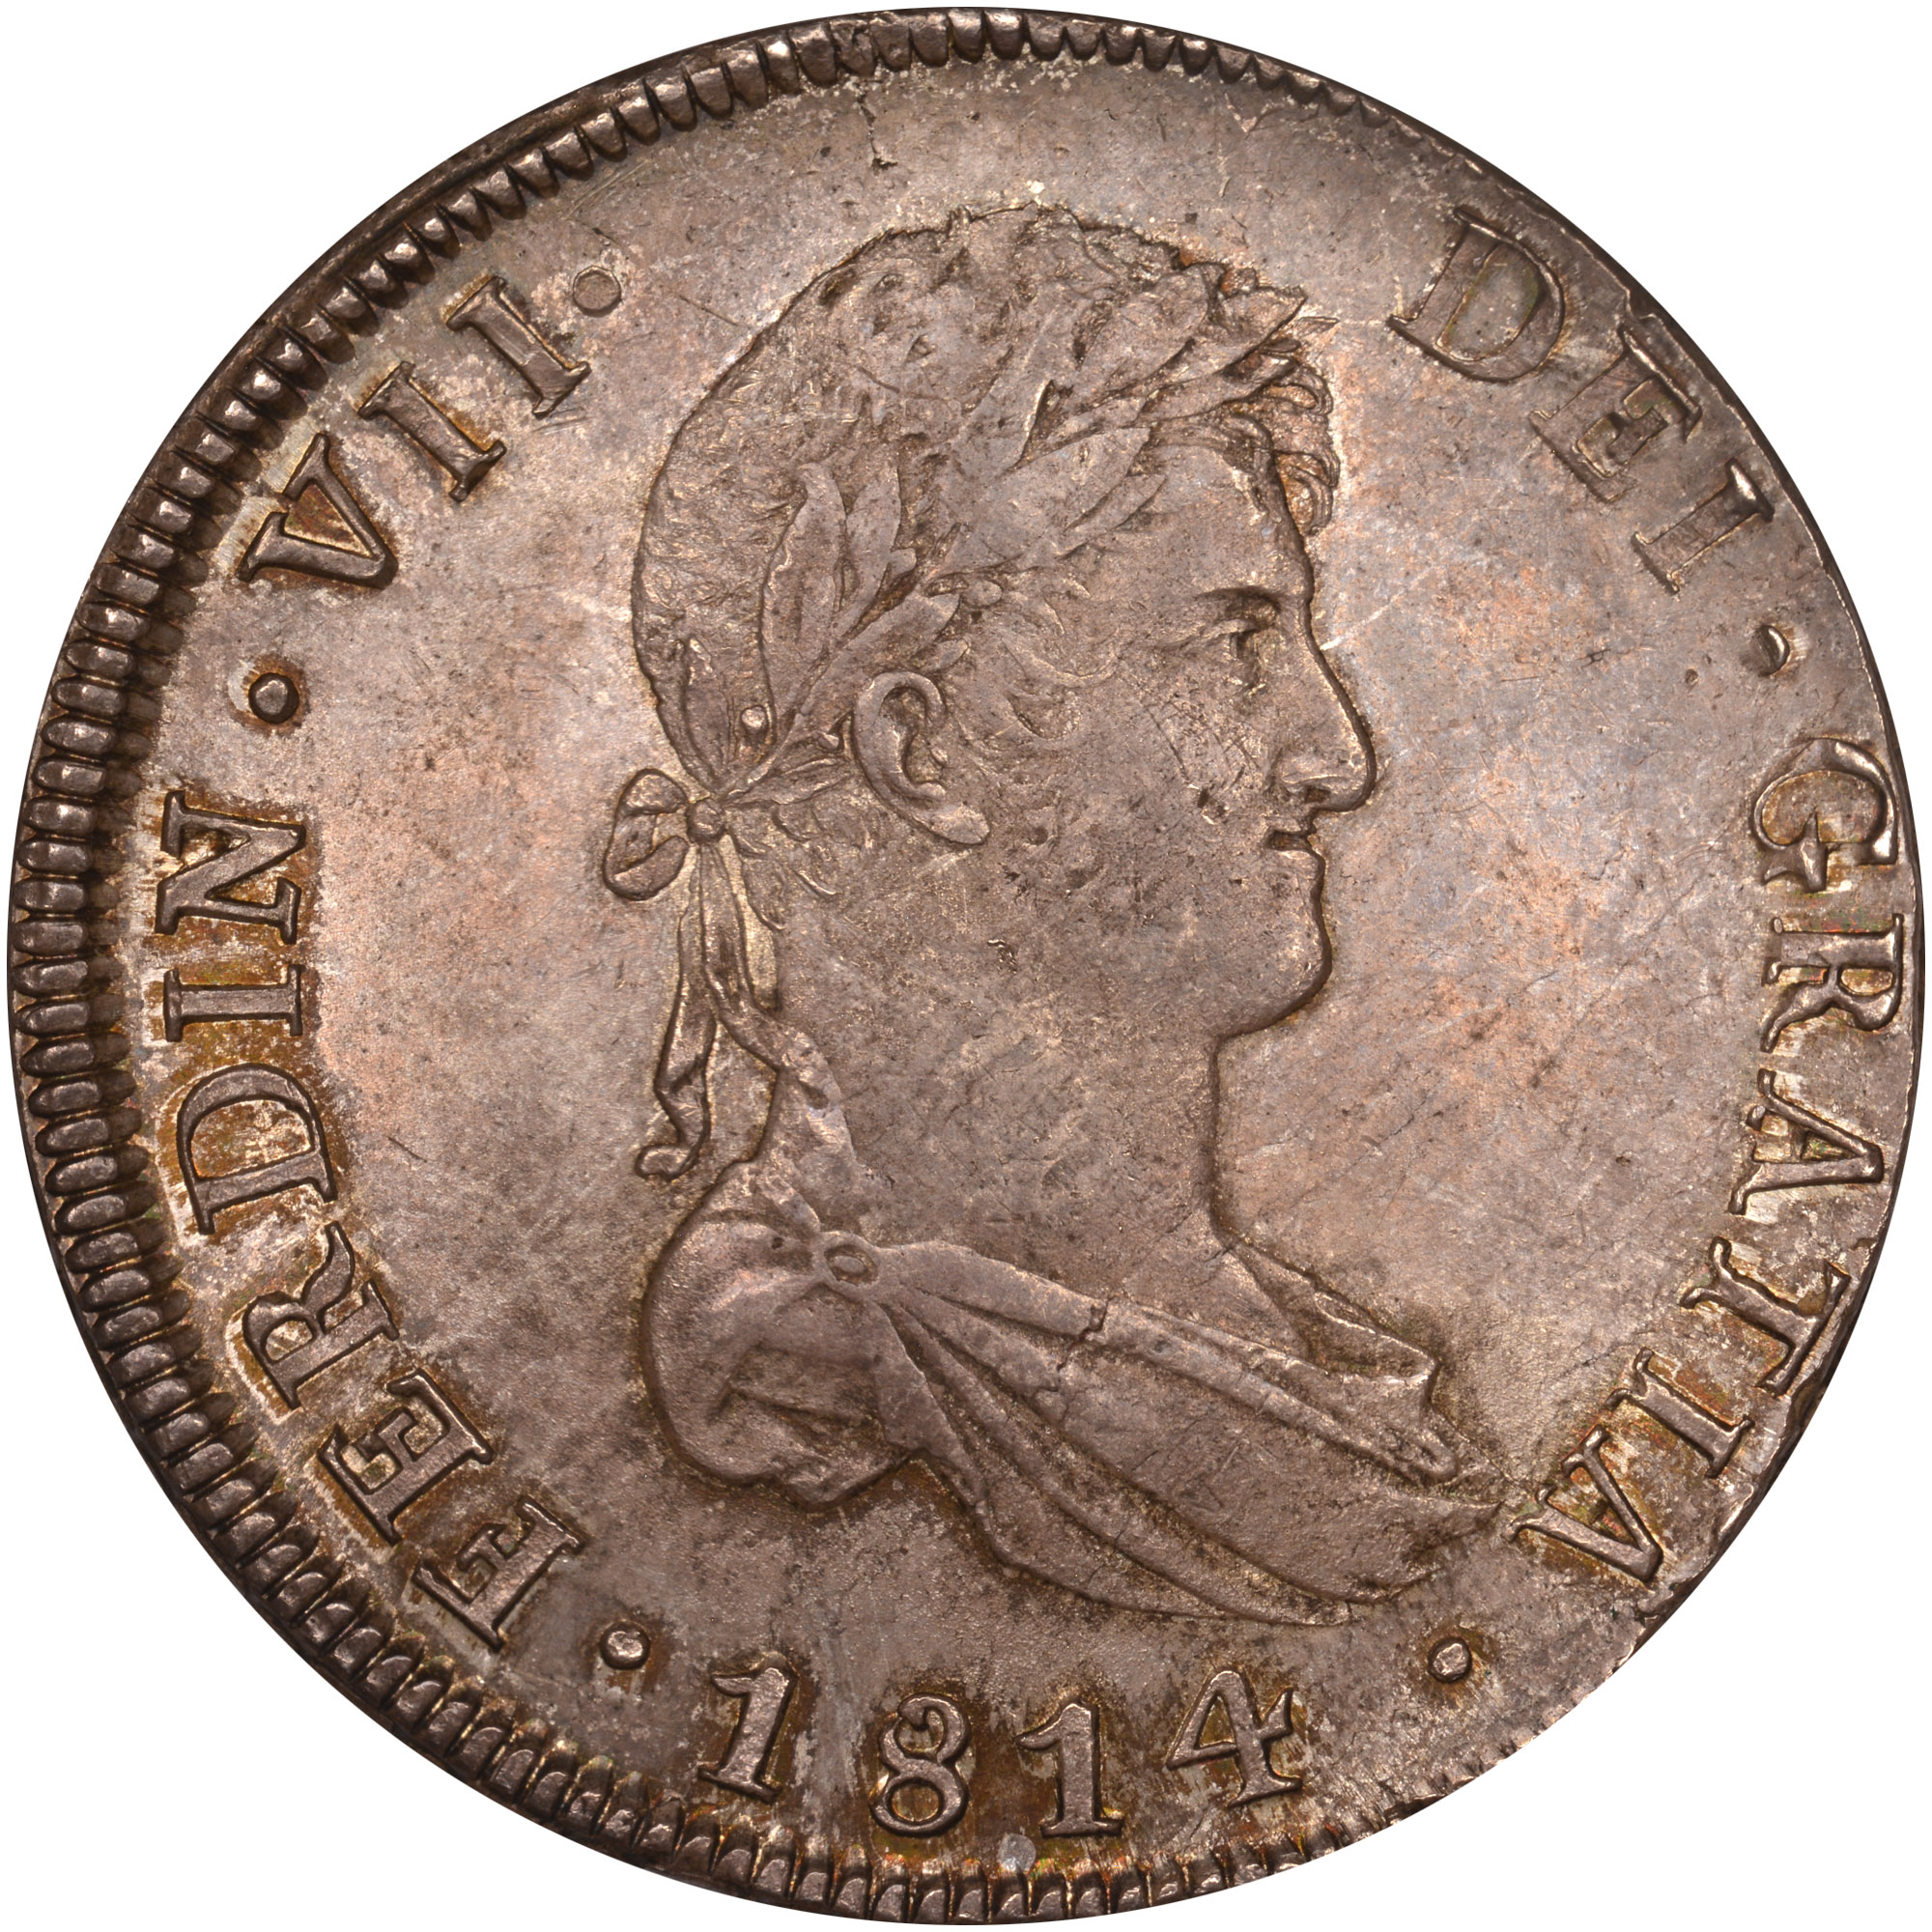 1812-1817 Chile 8 Reales obverse